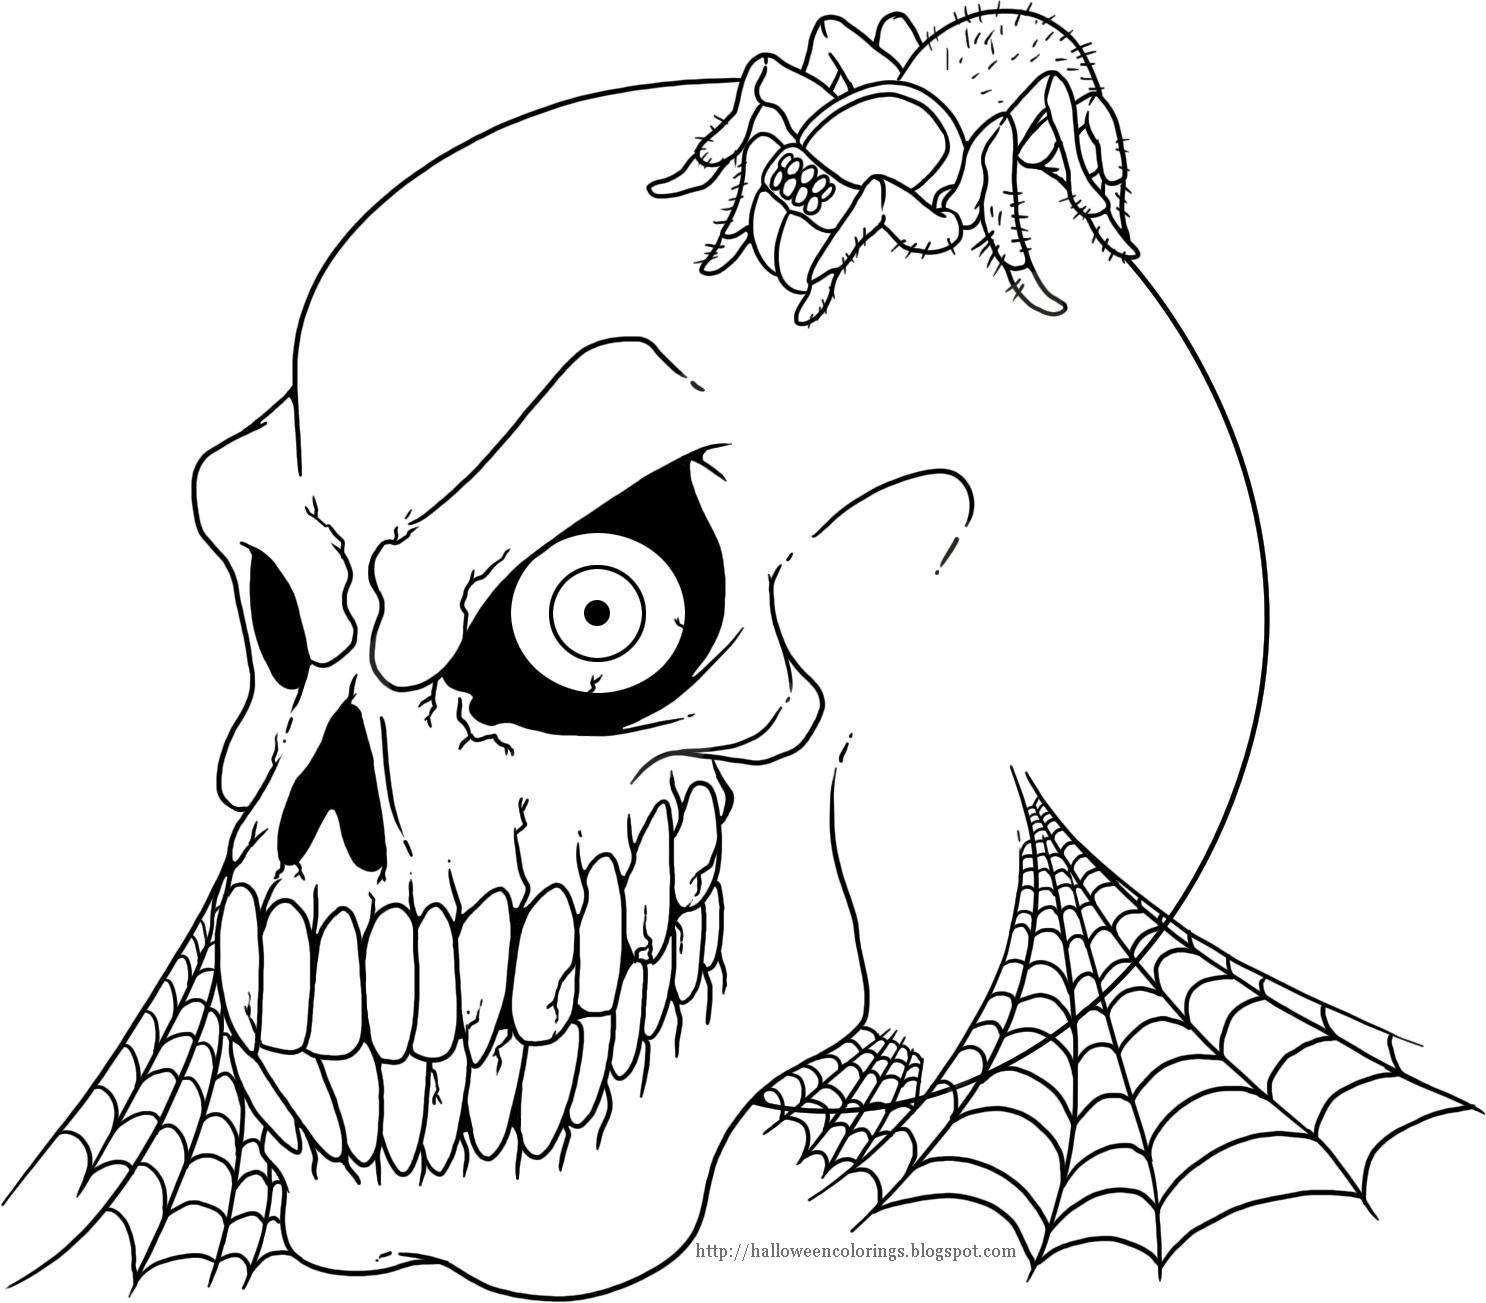 free halloween printable coloring pages pooh and friends halloween 2 free disney halloween printable coloring pages halloween free